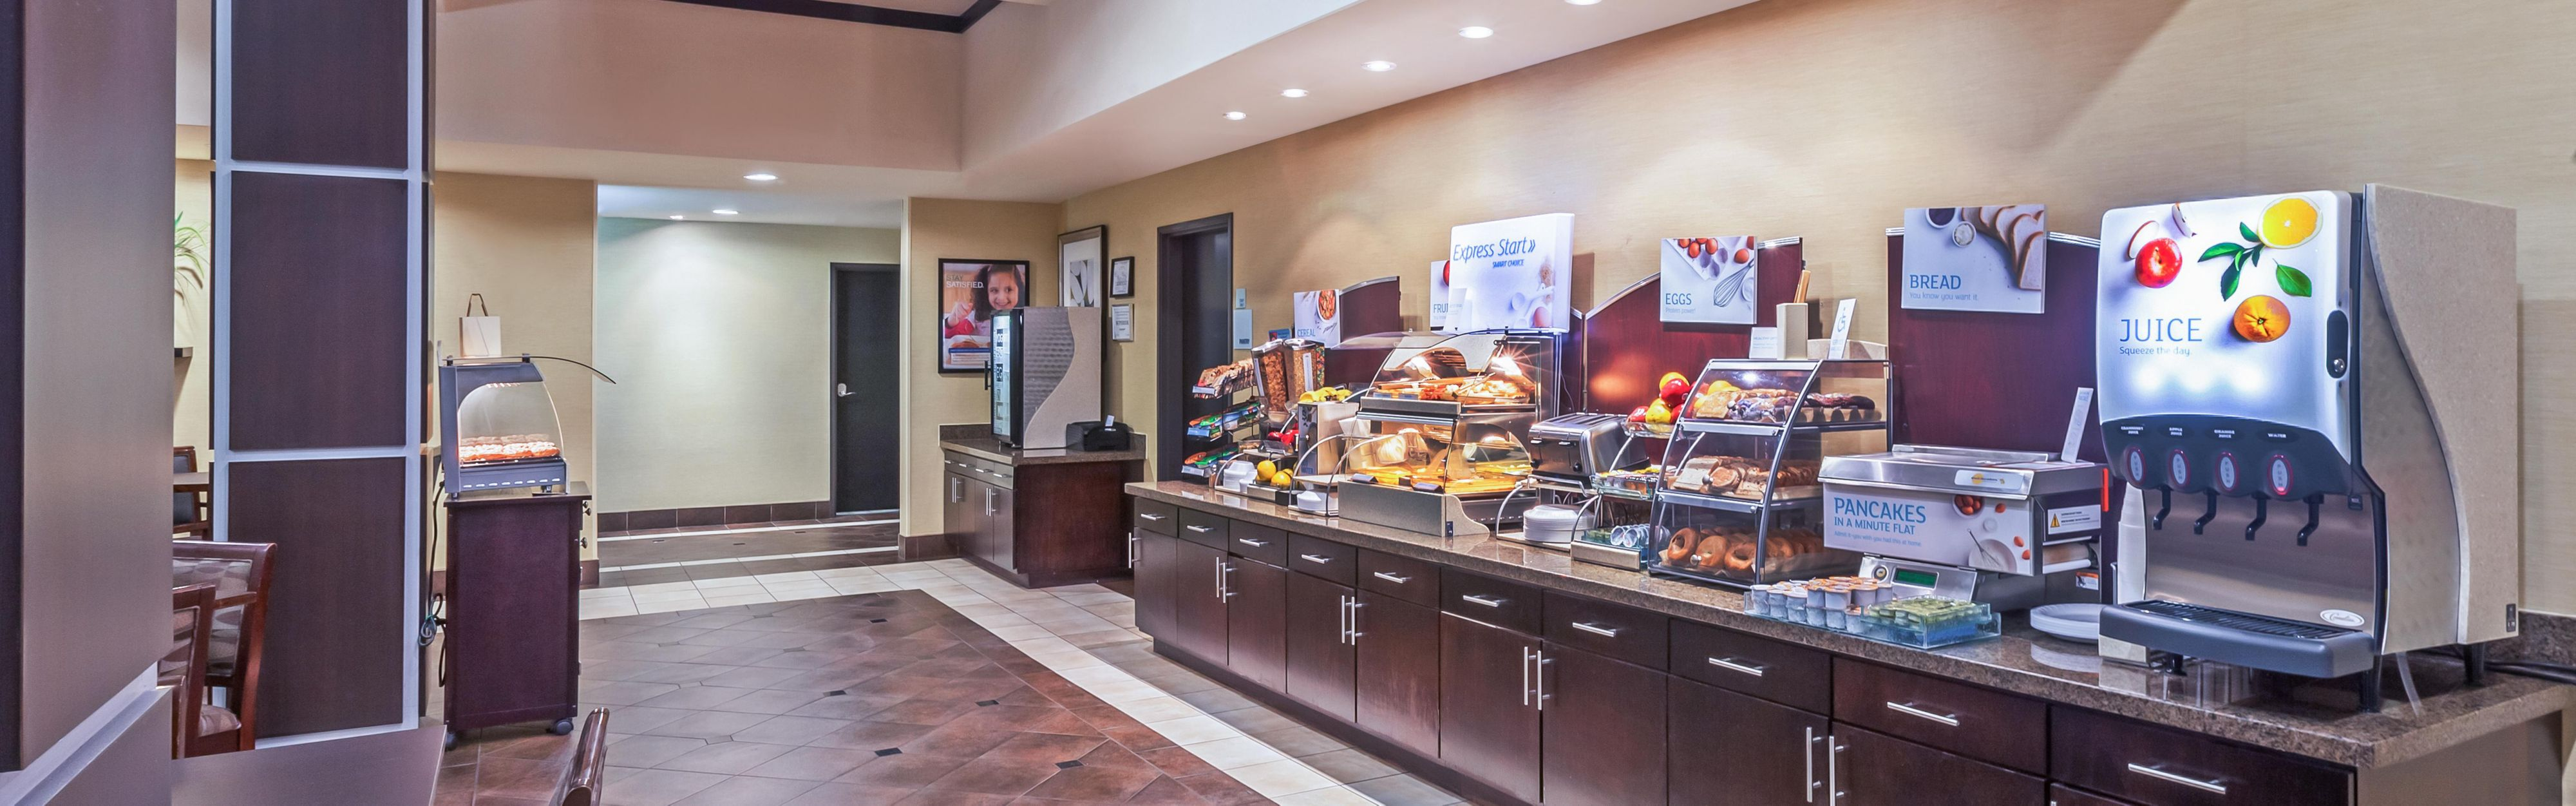 Hotels Near Parkdale Mall In Beaumont Tx